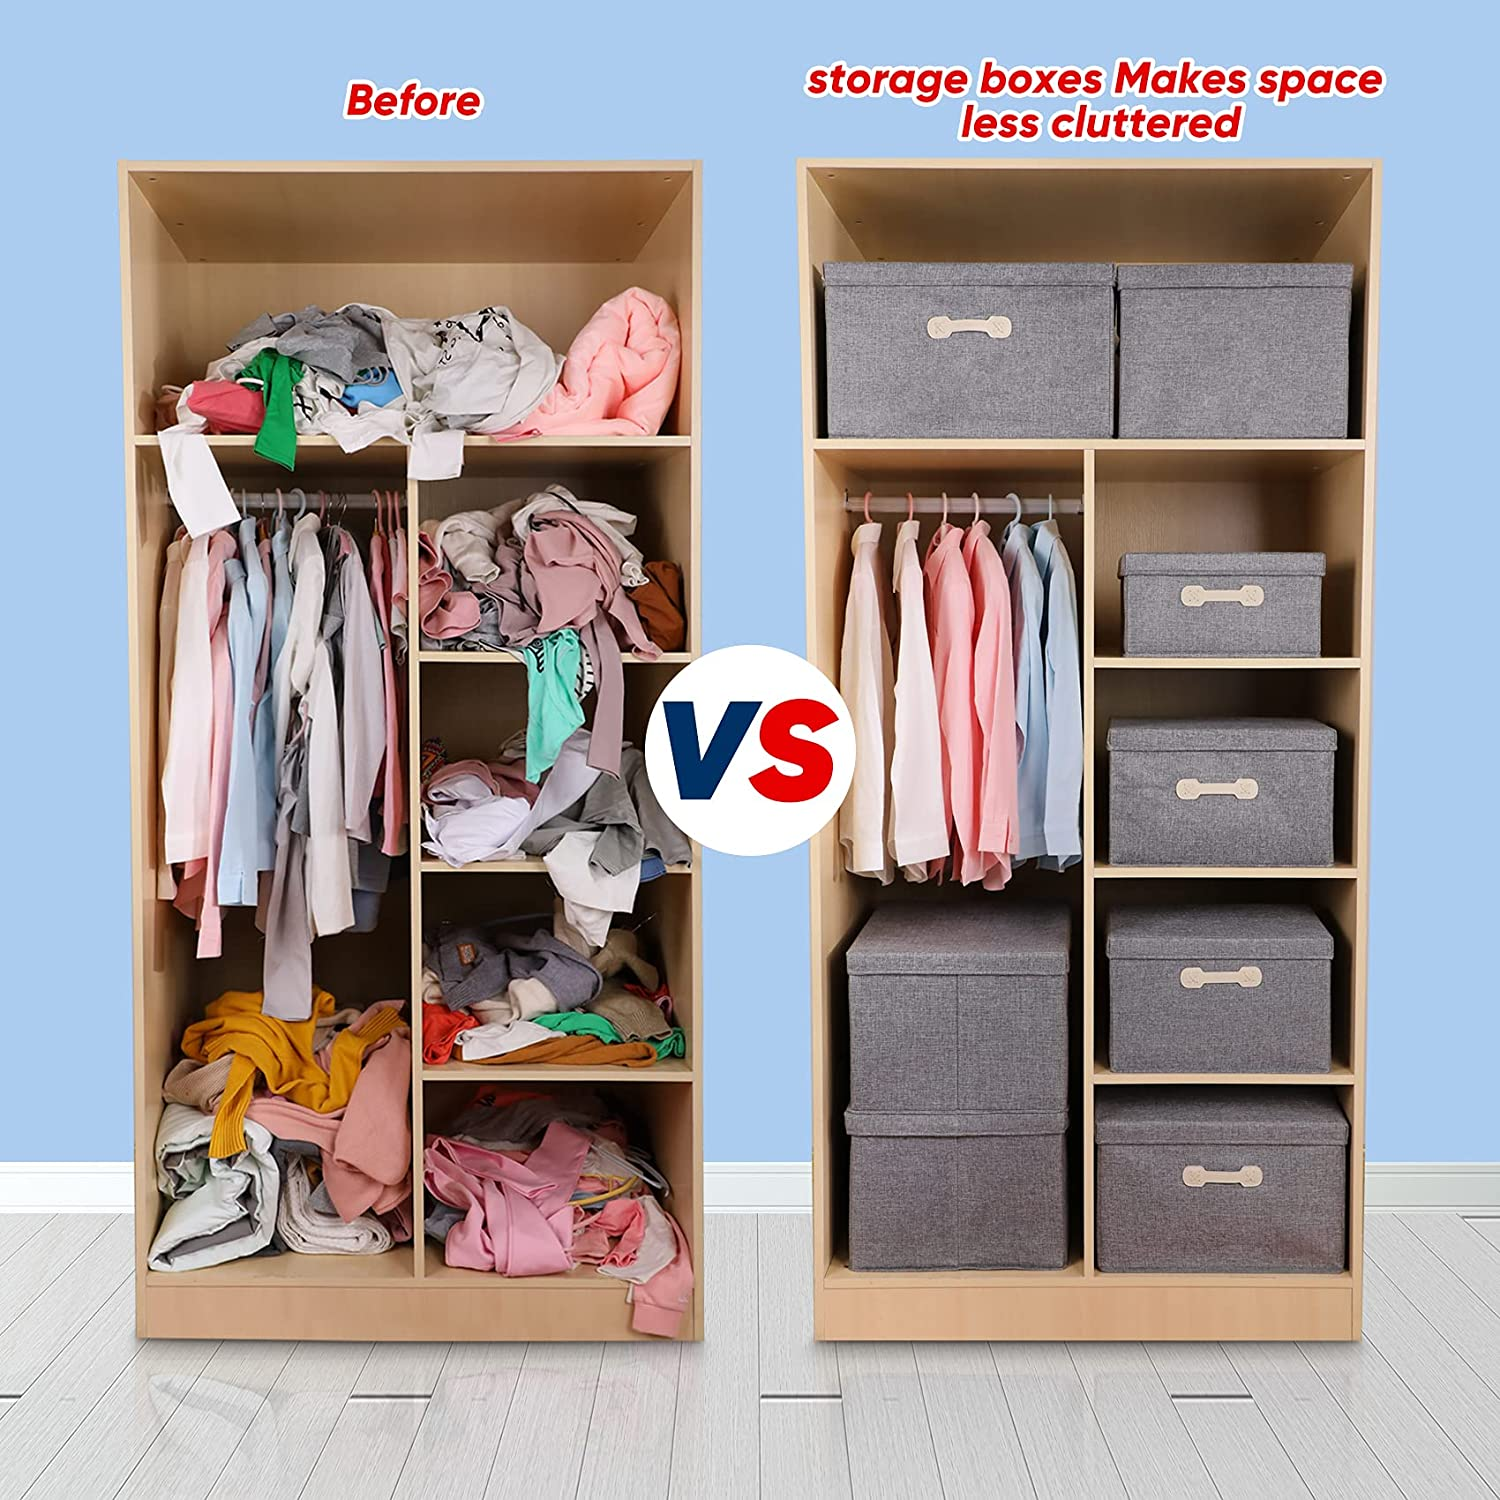 JOYBOS Storage Bins with Lids, Foldable Linen Fabric Storage Boxes with  Lids, Collapsible Closet Organizer Containers with Cover for Home Bedroom  ...